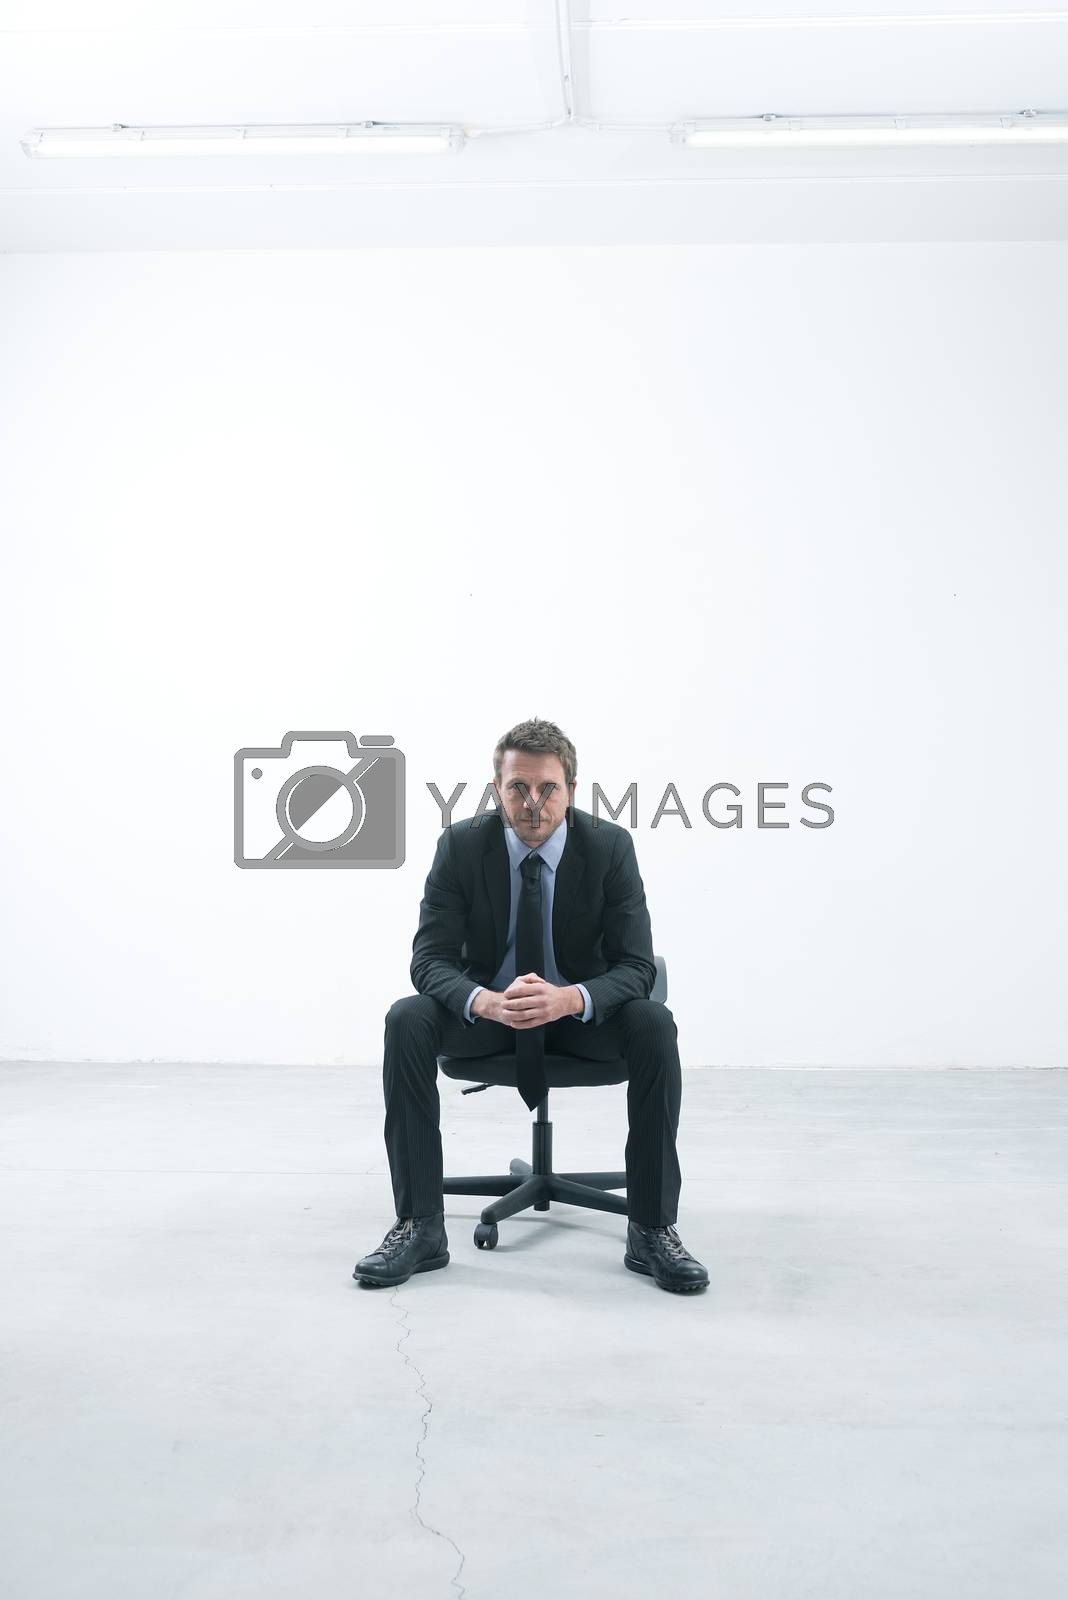 Elegant businessman sitting on an office chair in an empty room looking at camera.